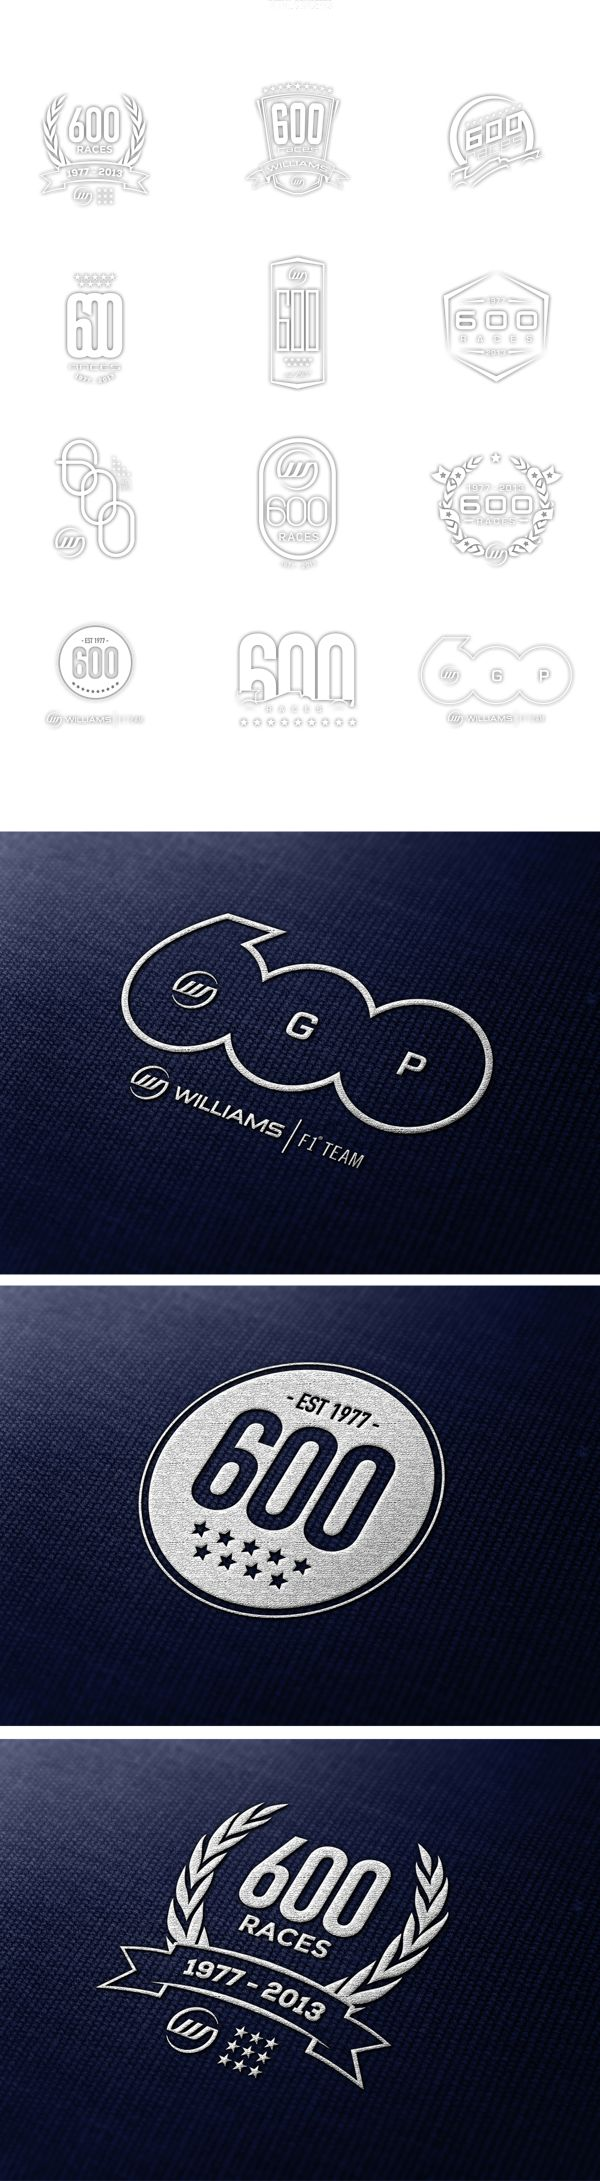 pinterest.com/fra411 #logotype - Williams F1 Team - 600 Races by Samuel Ladlow, badge / anniversary